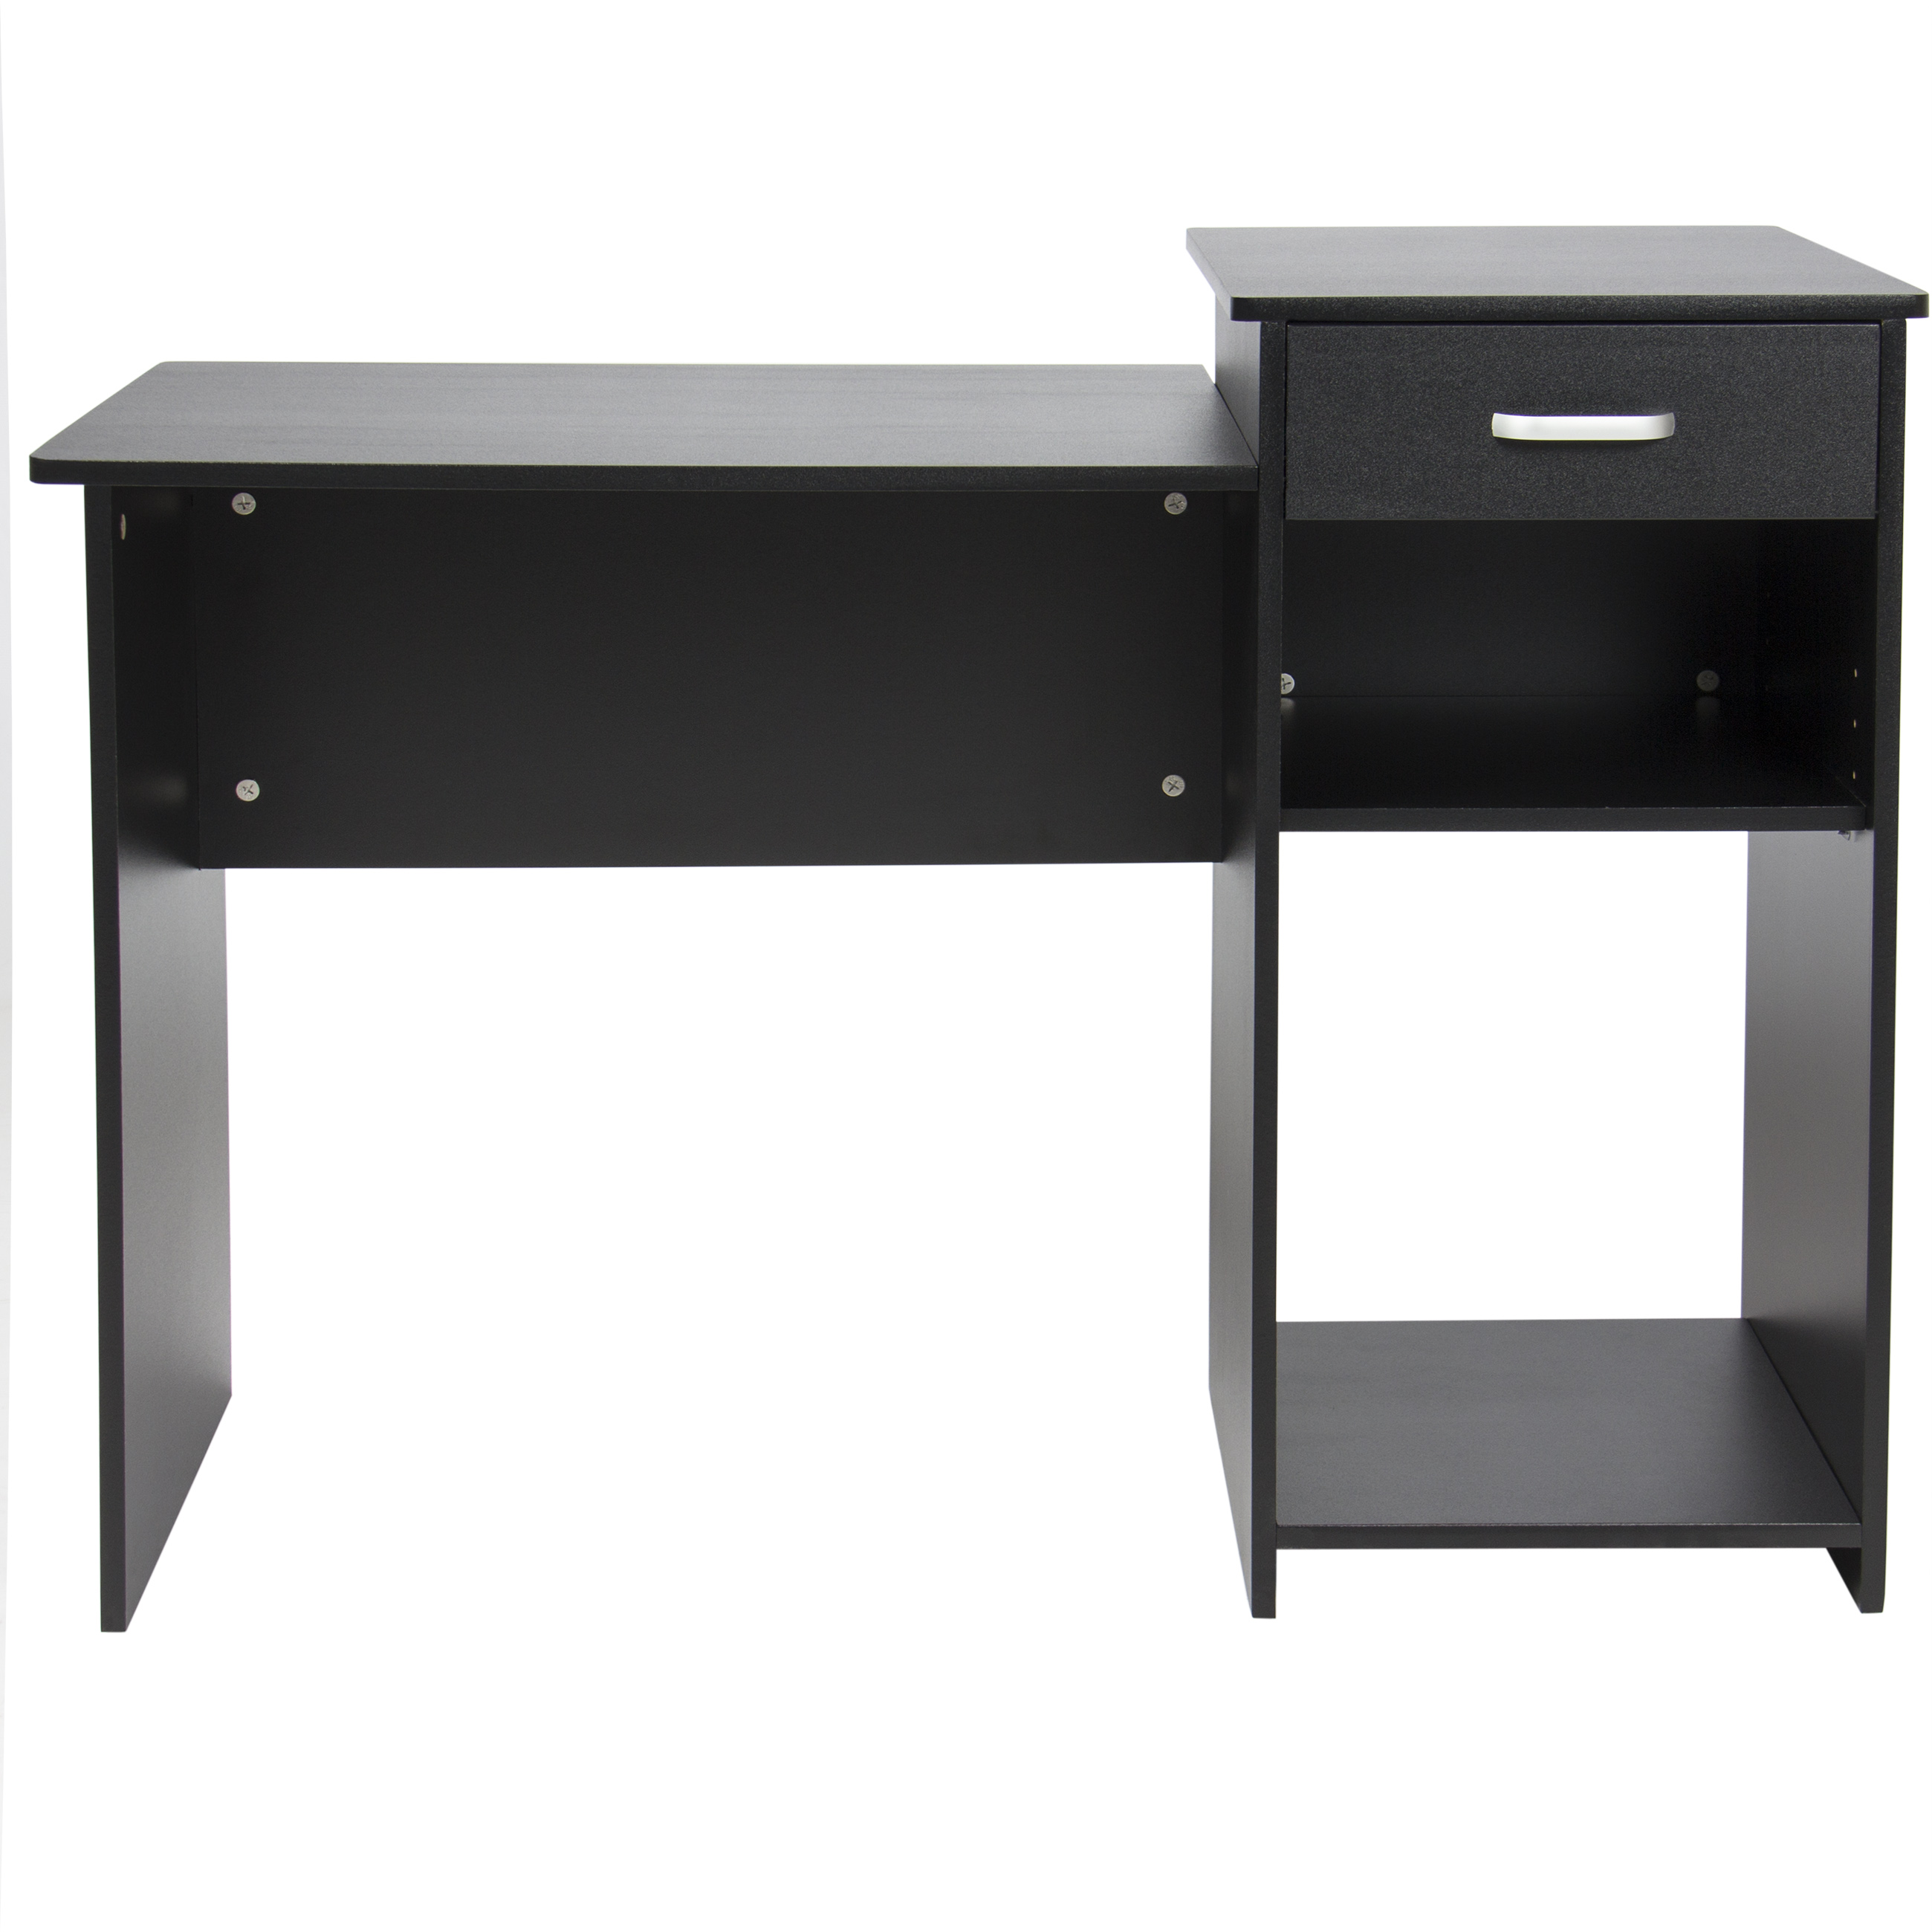 Best Choice Products Wood Computer Desk Workstation Table For Home Office Dorm W Drawer Adjule Shelf Black